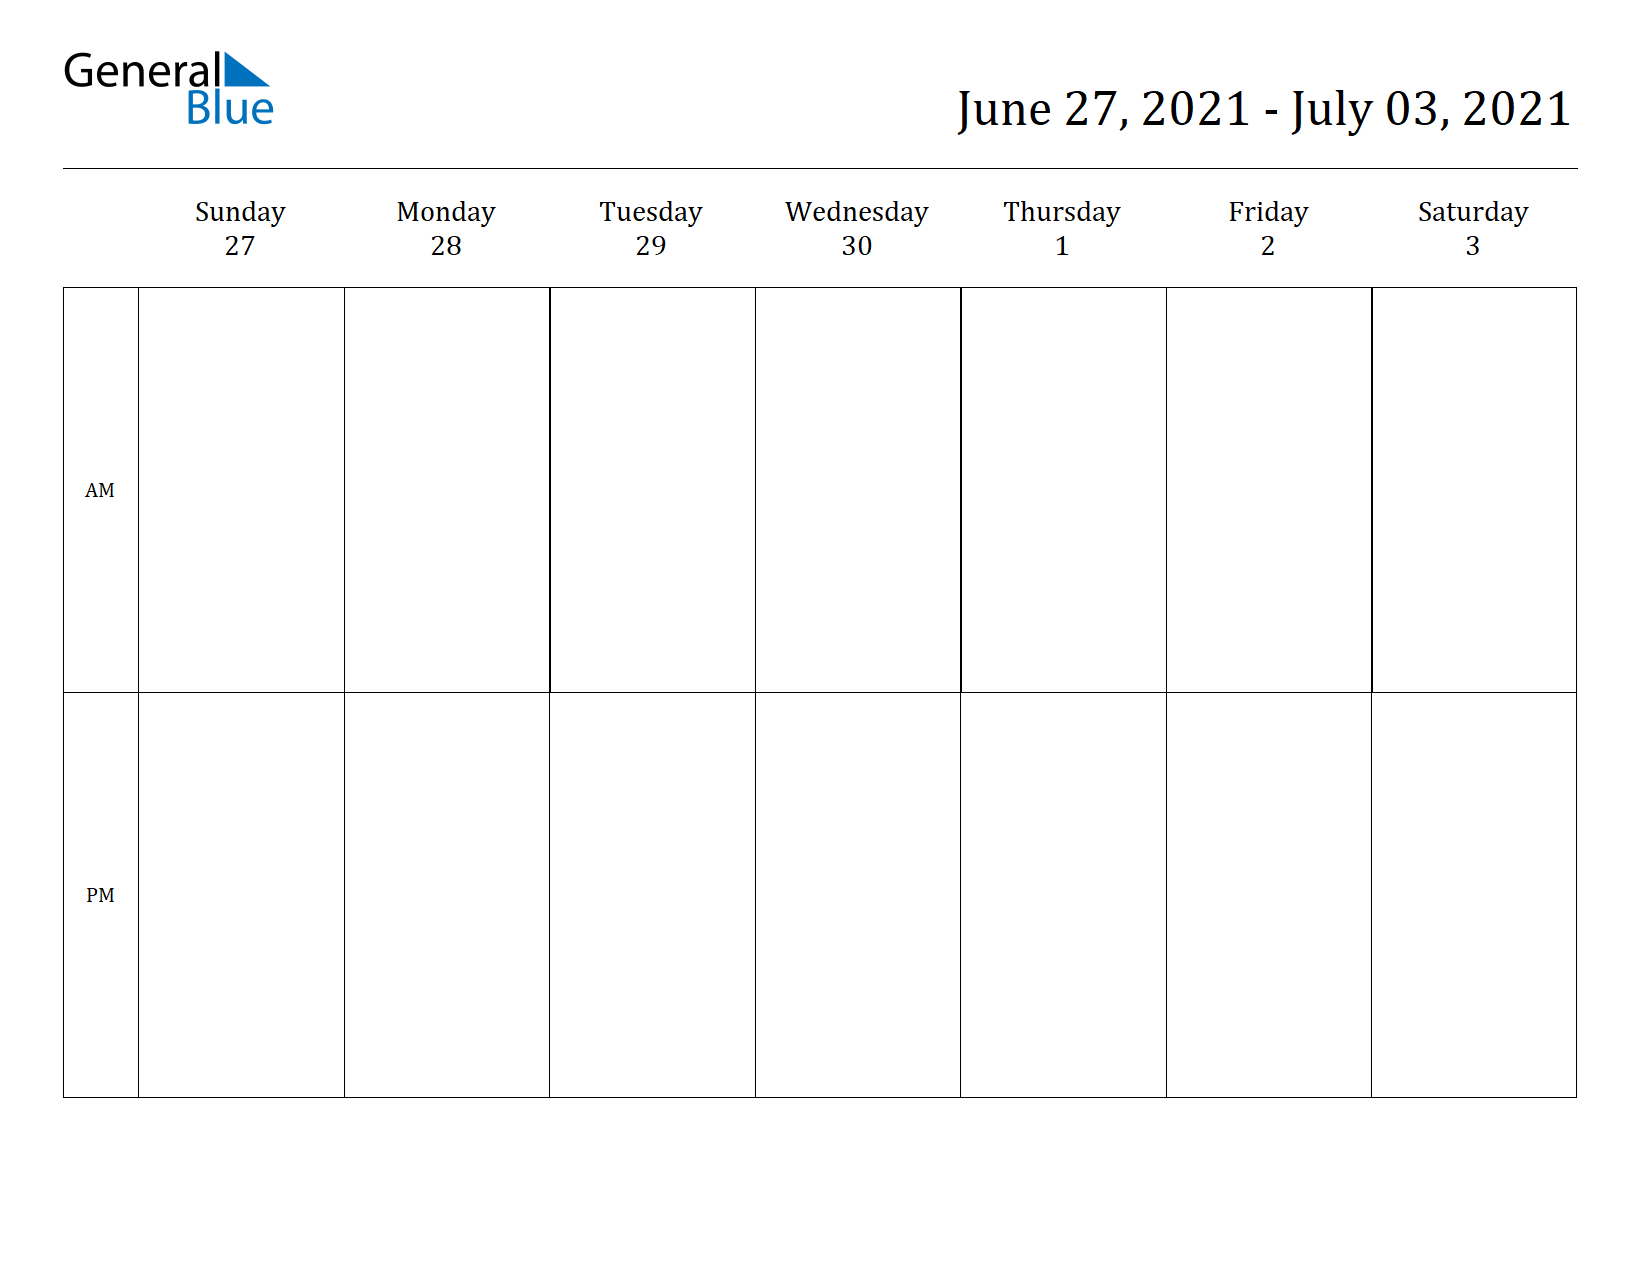 Weekly Calendar for Jun 27, 2021 to Jul 03, 2021